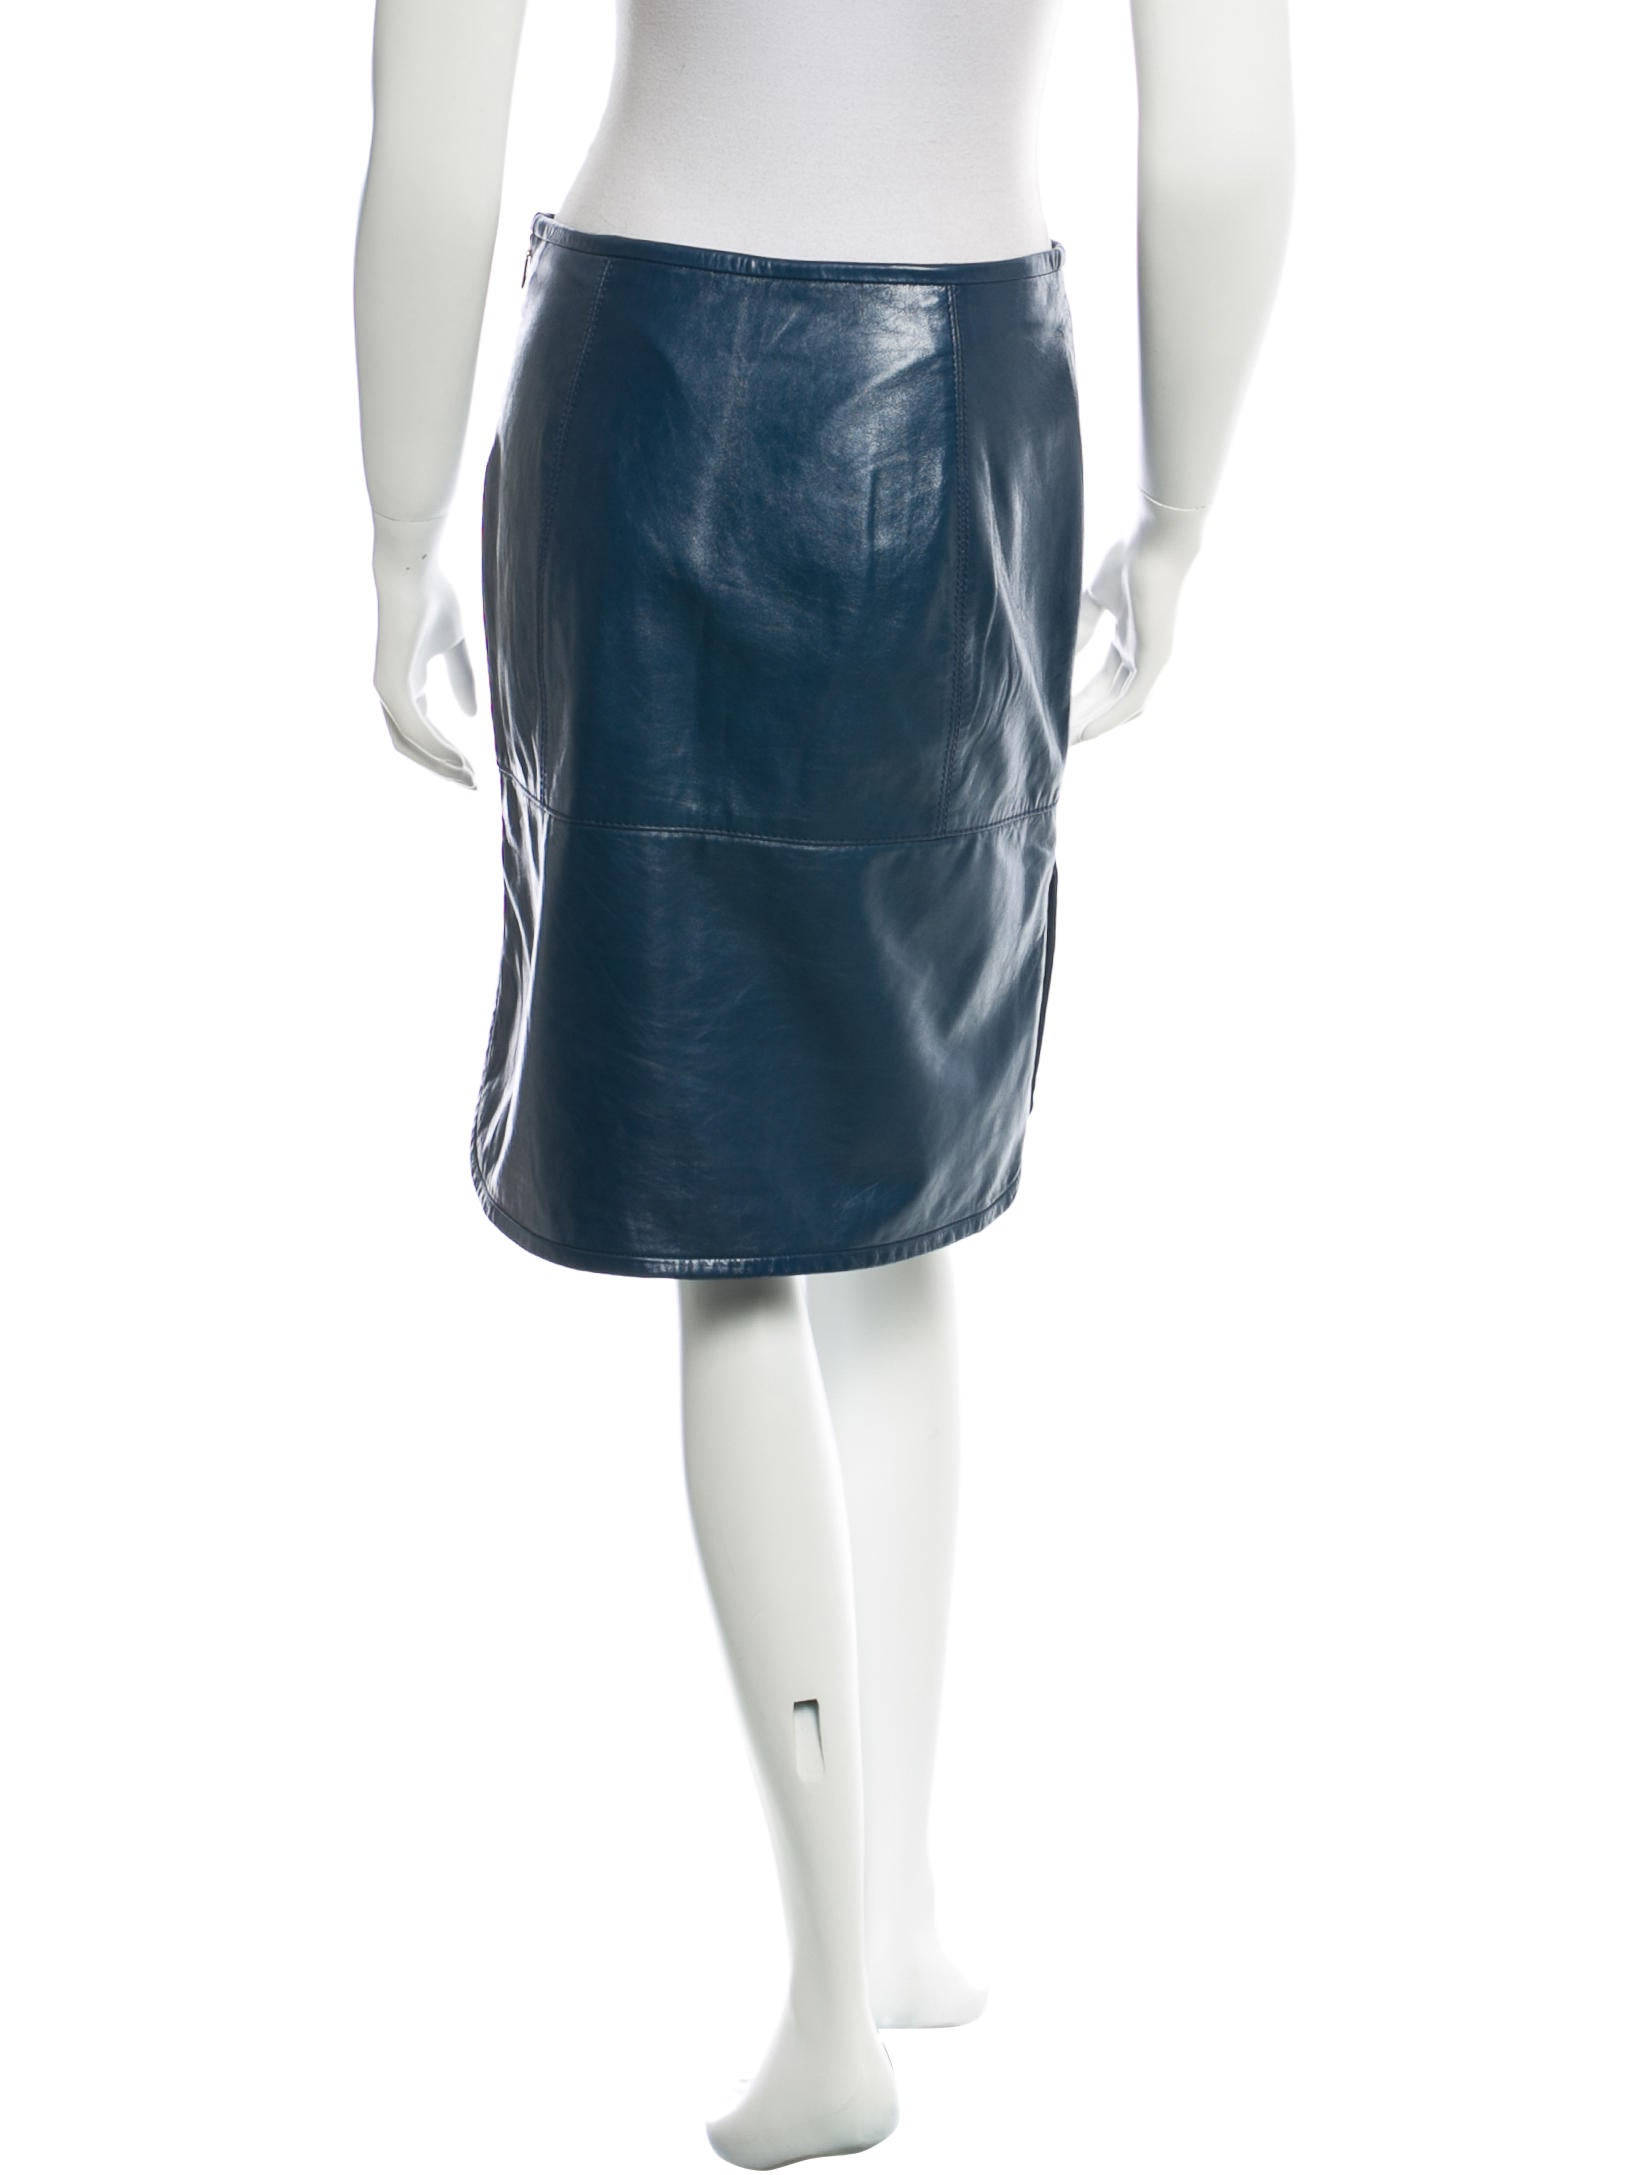 burch leather knee length skirt clothing wto55383